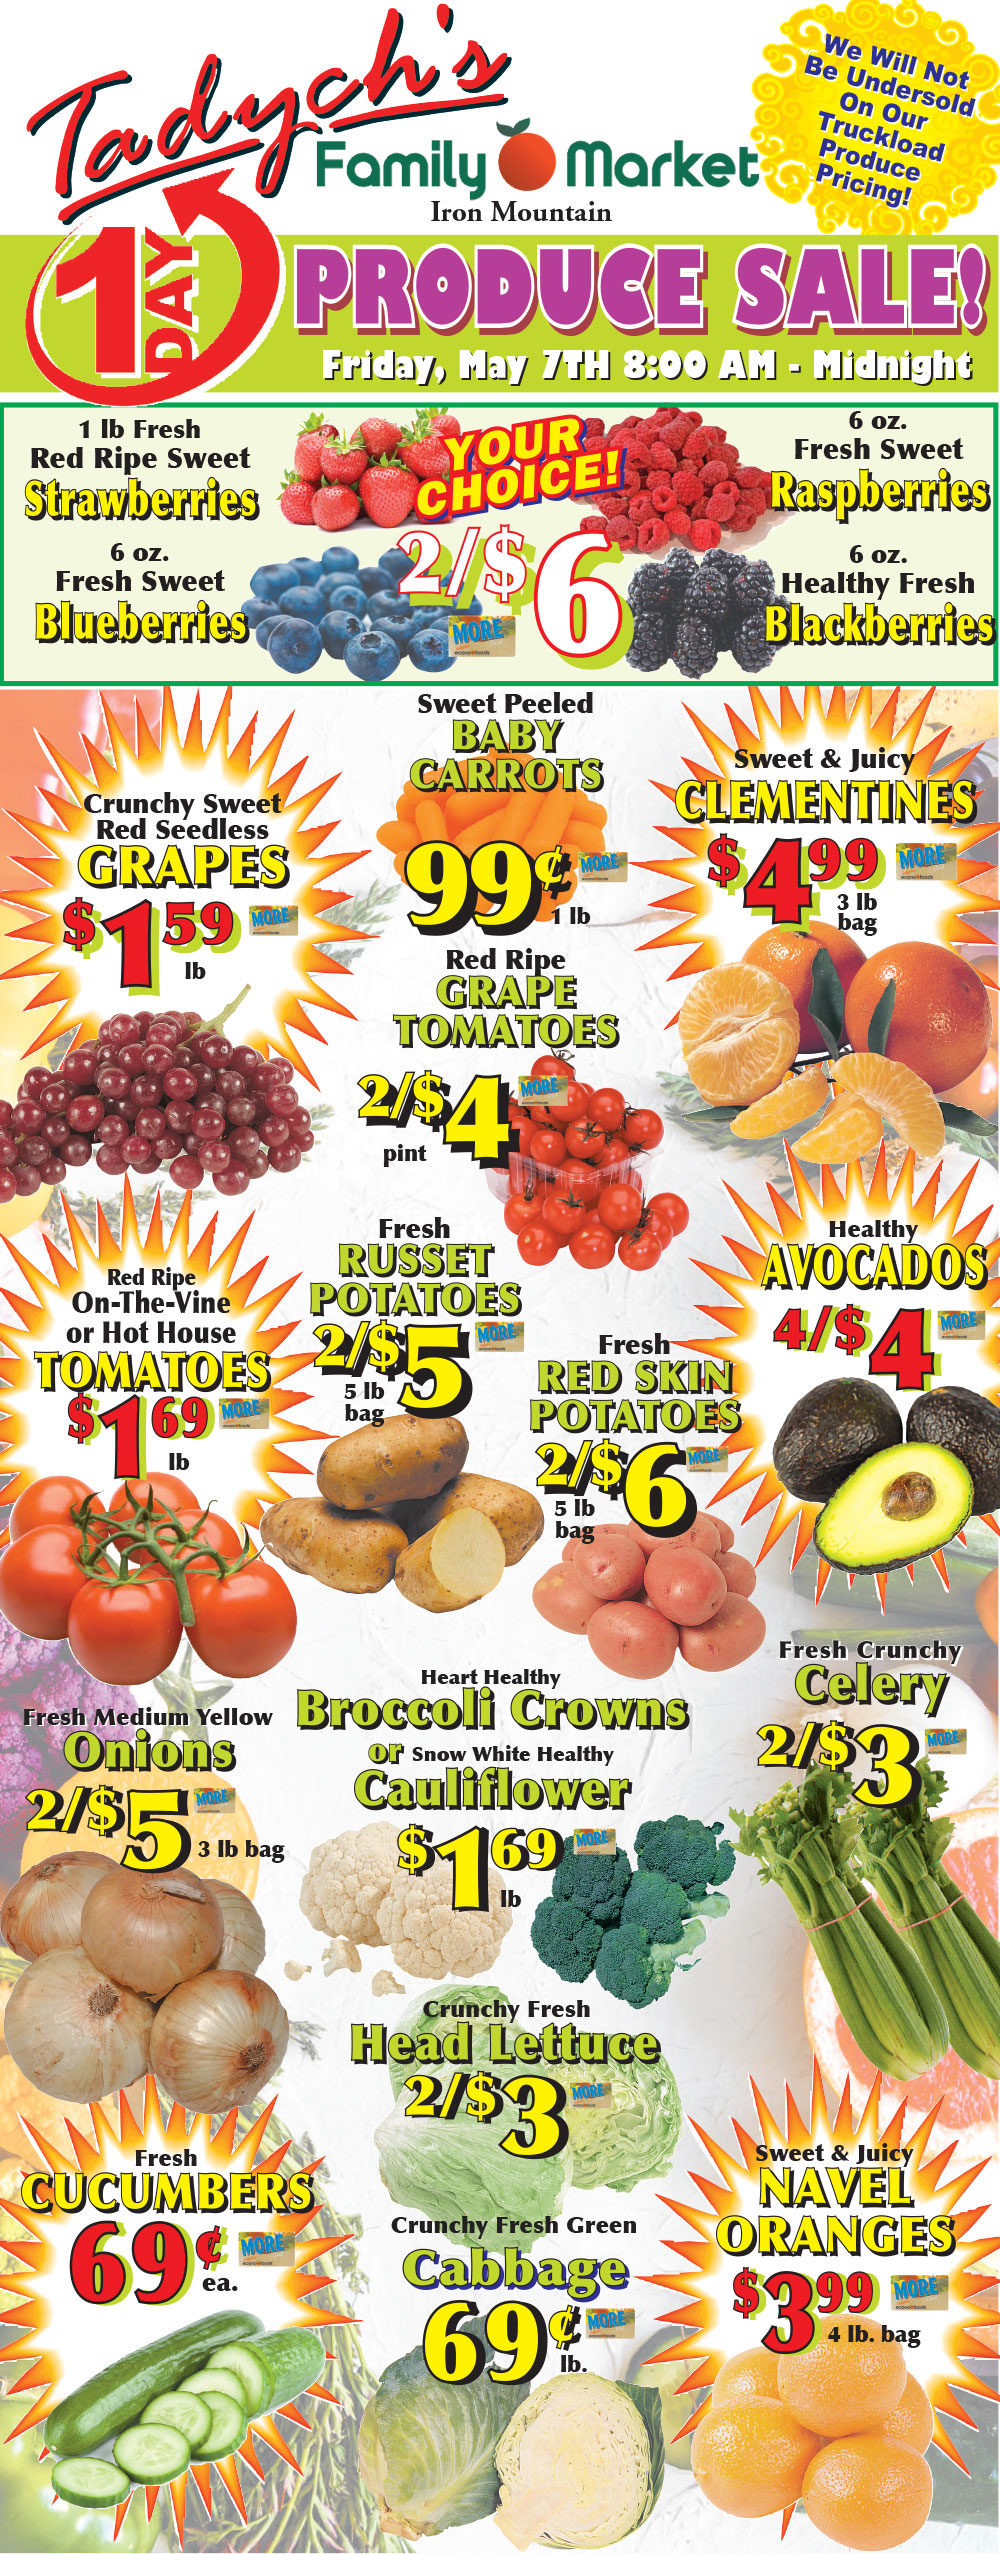 Iron Mountain Produce Sale